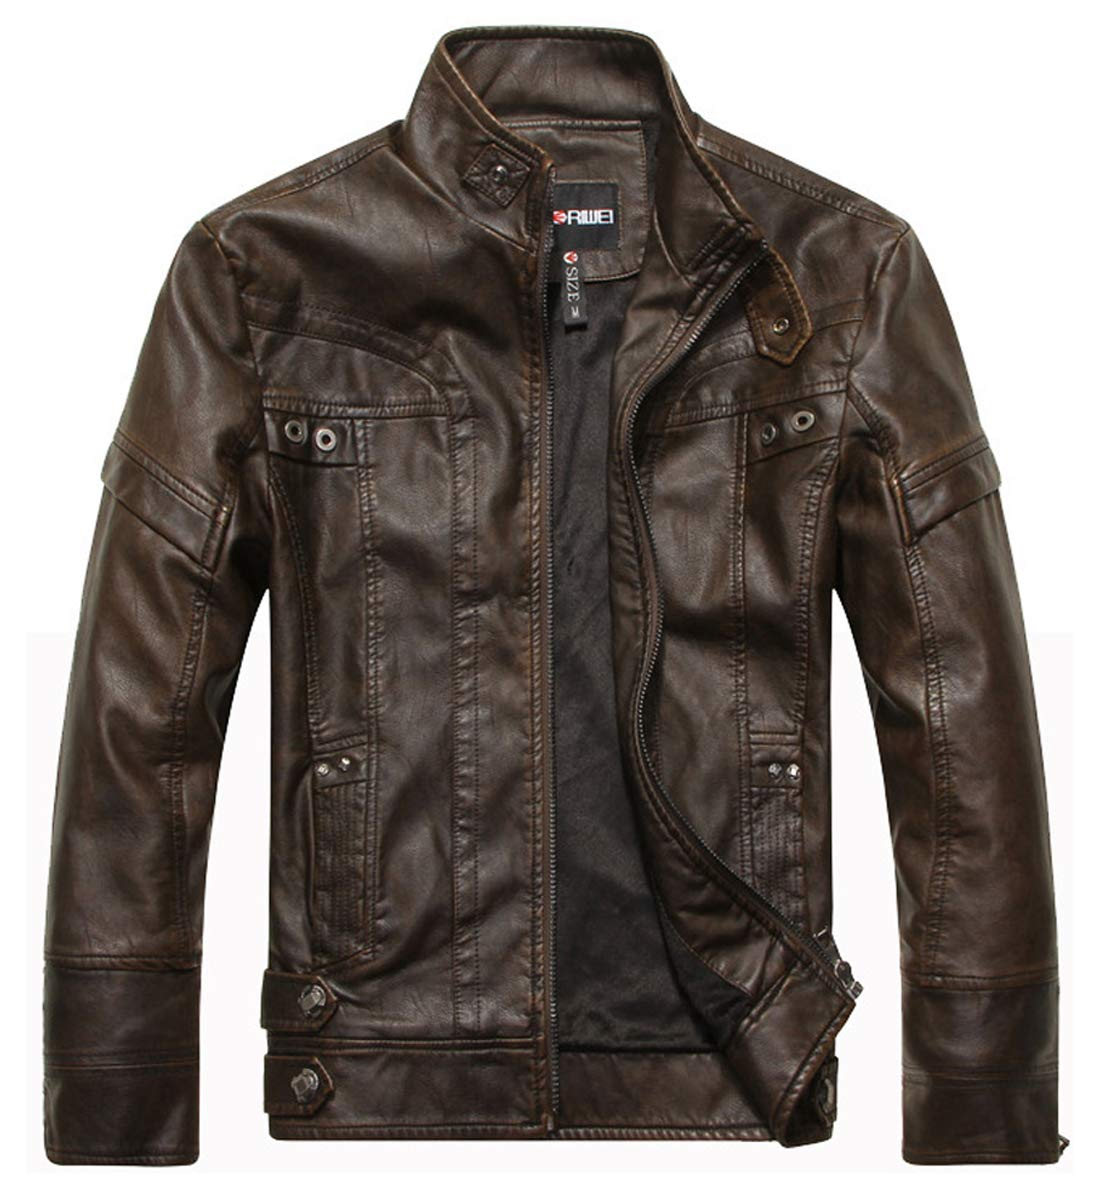 WULFUL Men's Vintage Stand Collar Leather Jacket Motorcycle PU Jacket and Coat by WULFUL